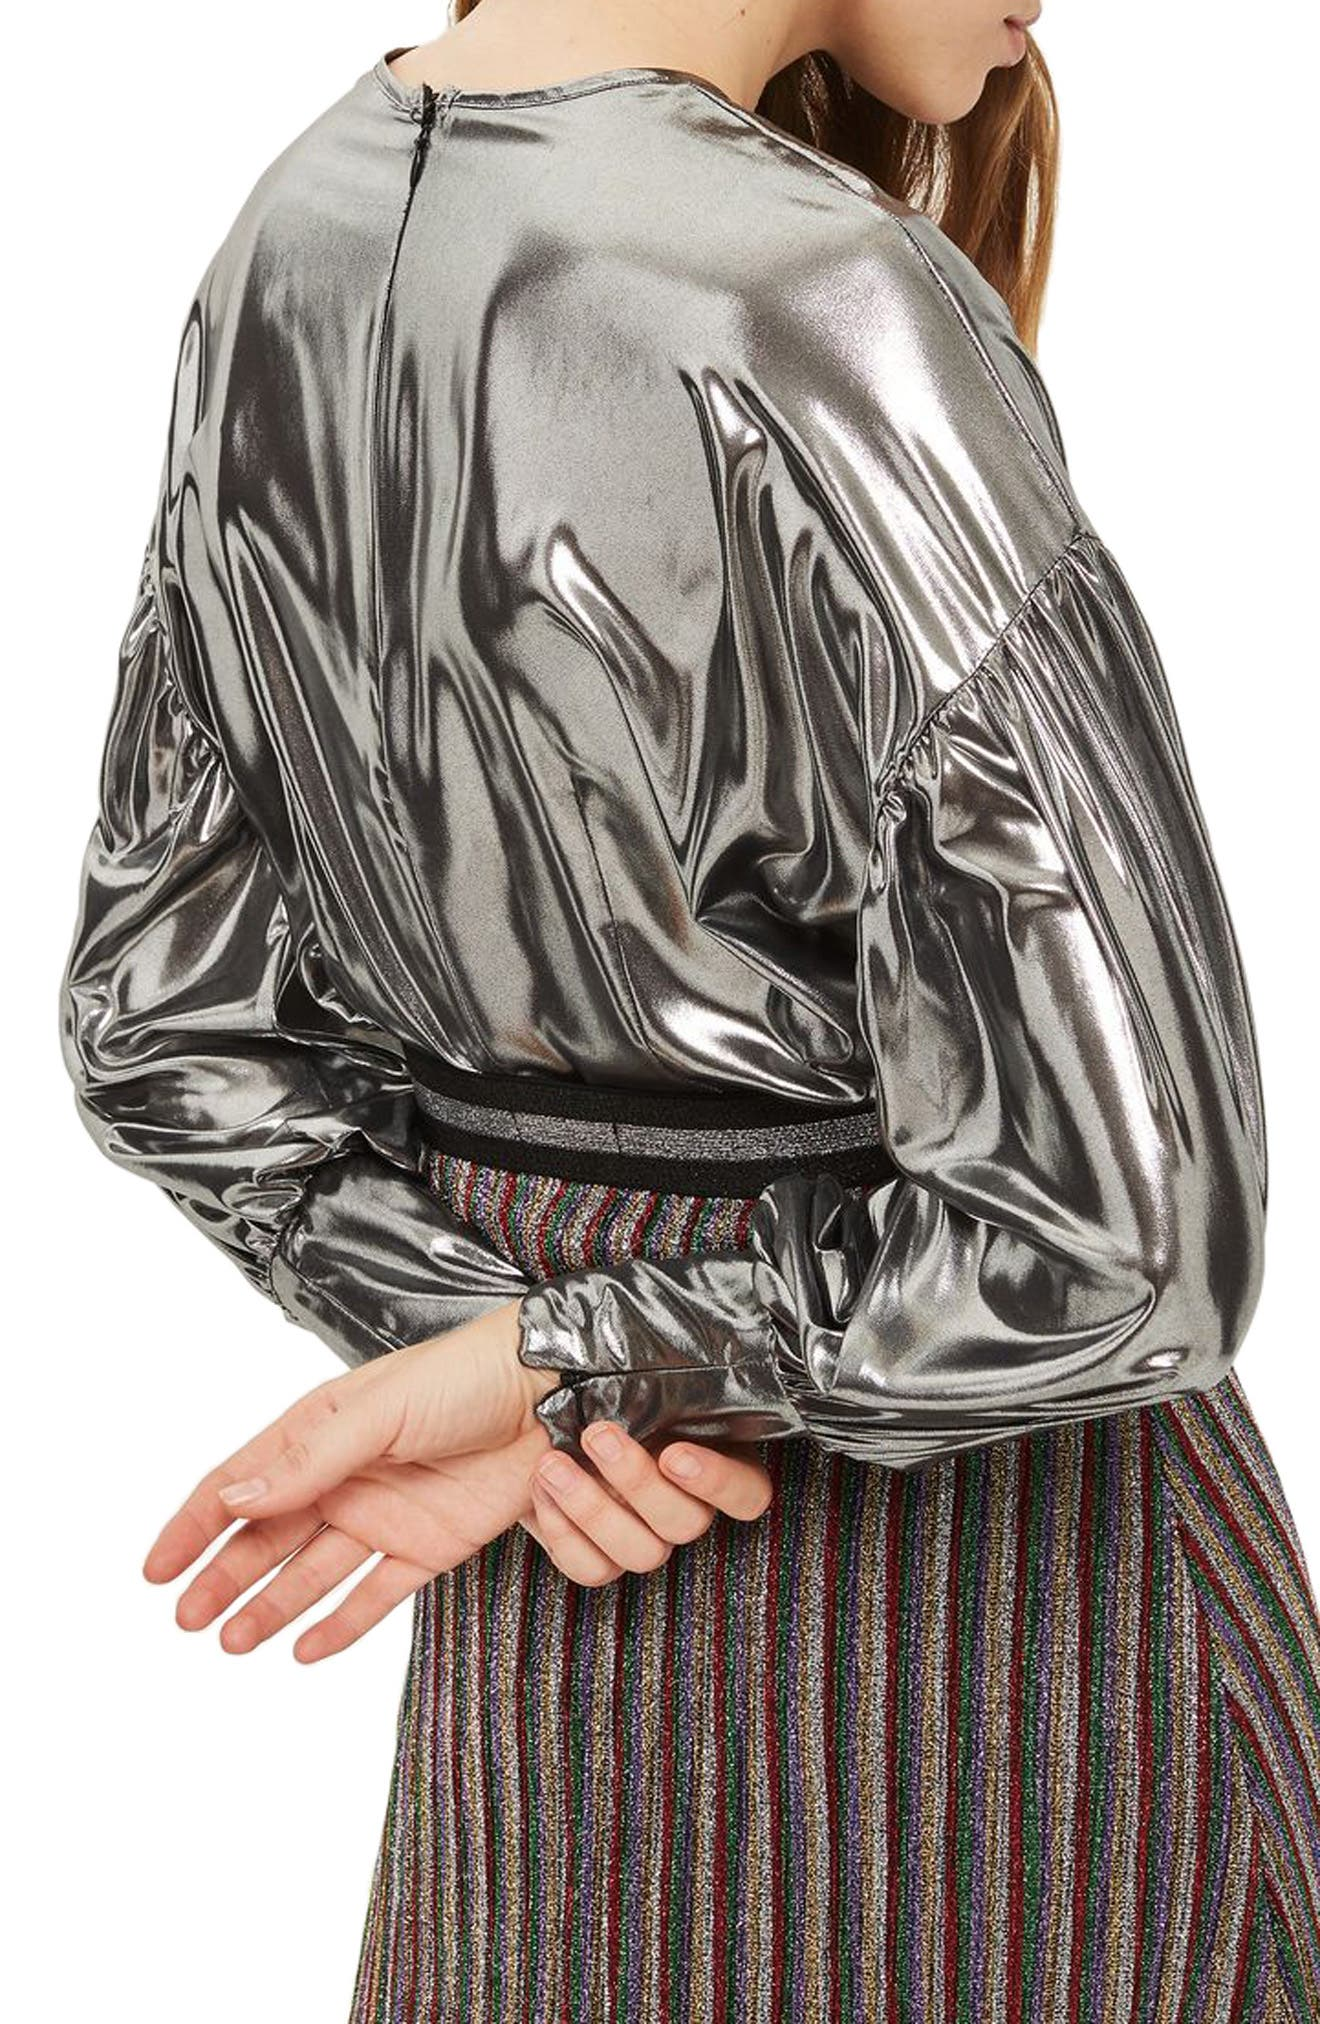 Balloon Sleeve Lamé Blouse,                             Alternate thumbnail 3, color,                             Silver